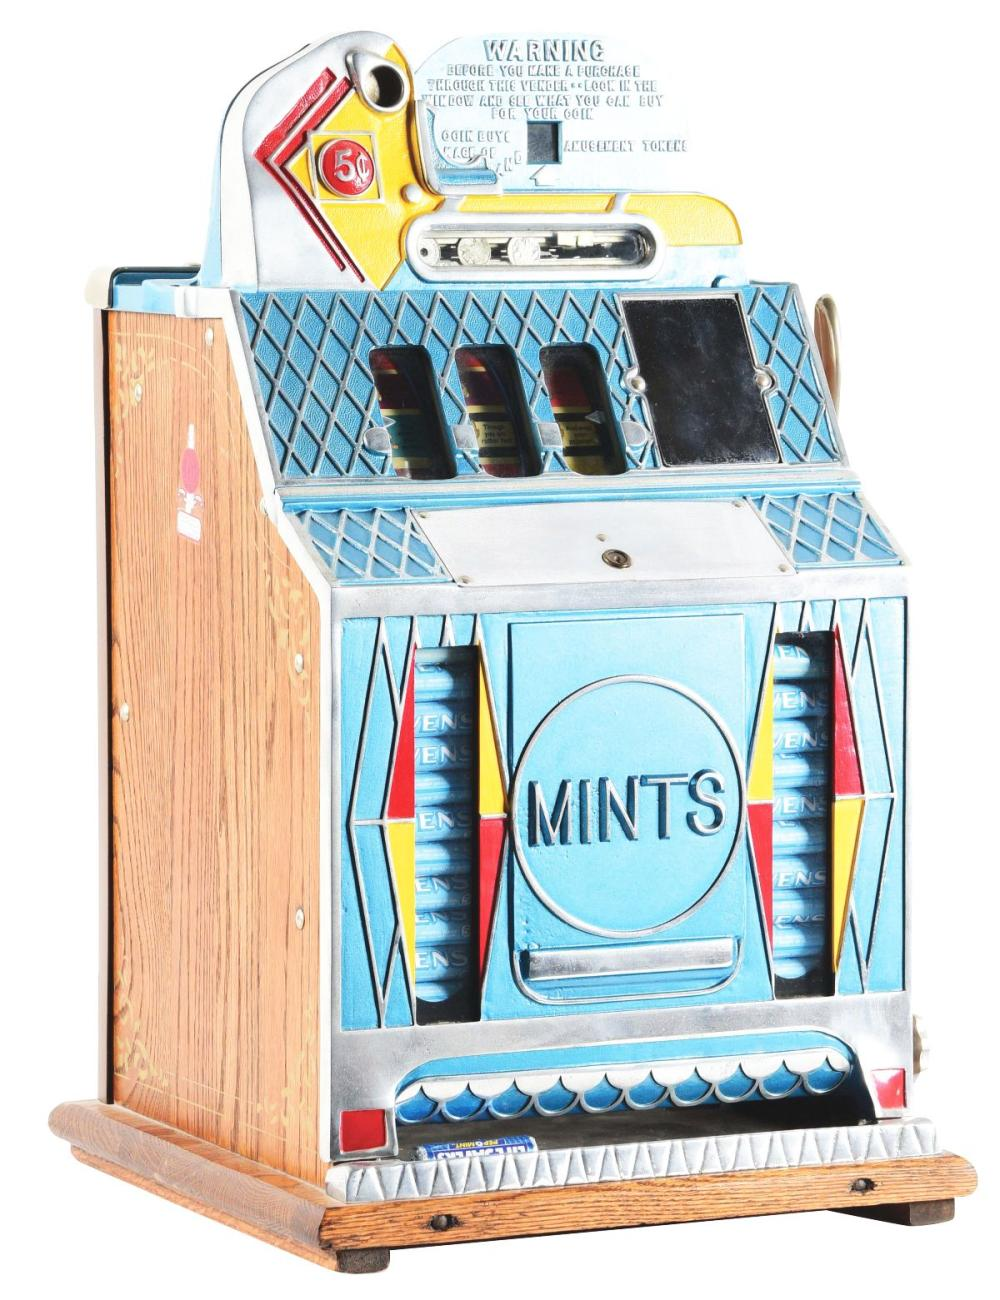 5¢ MILLS FUTURE PAY MINT SLOT MACHINE.